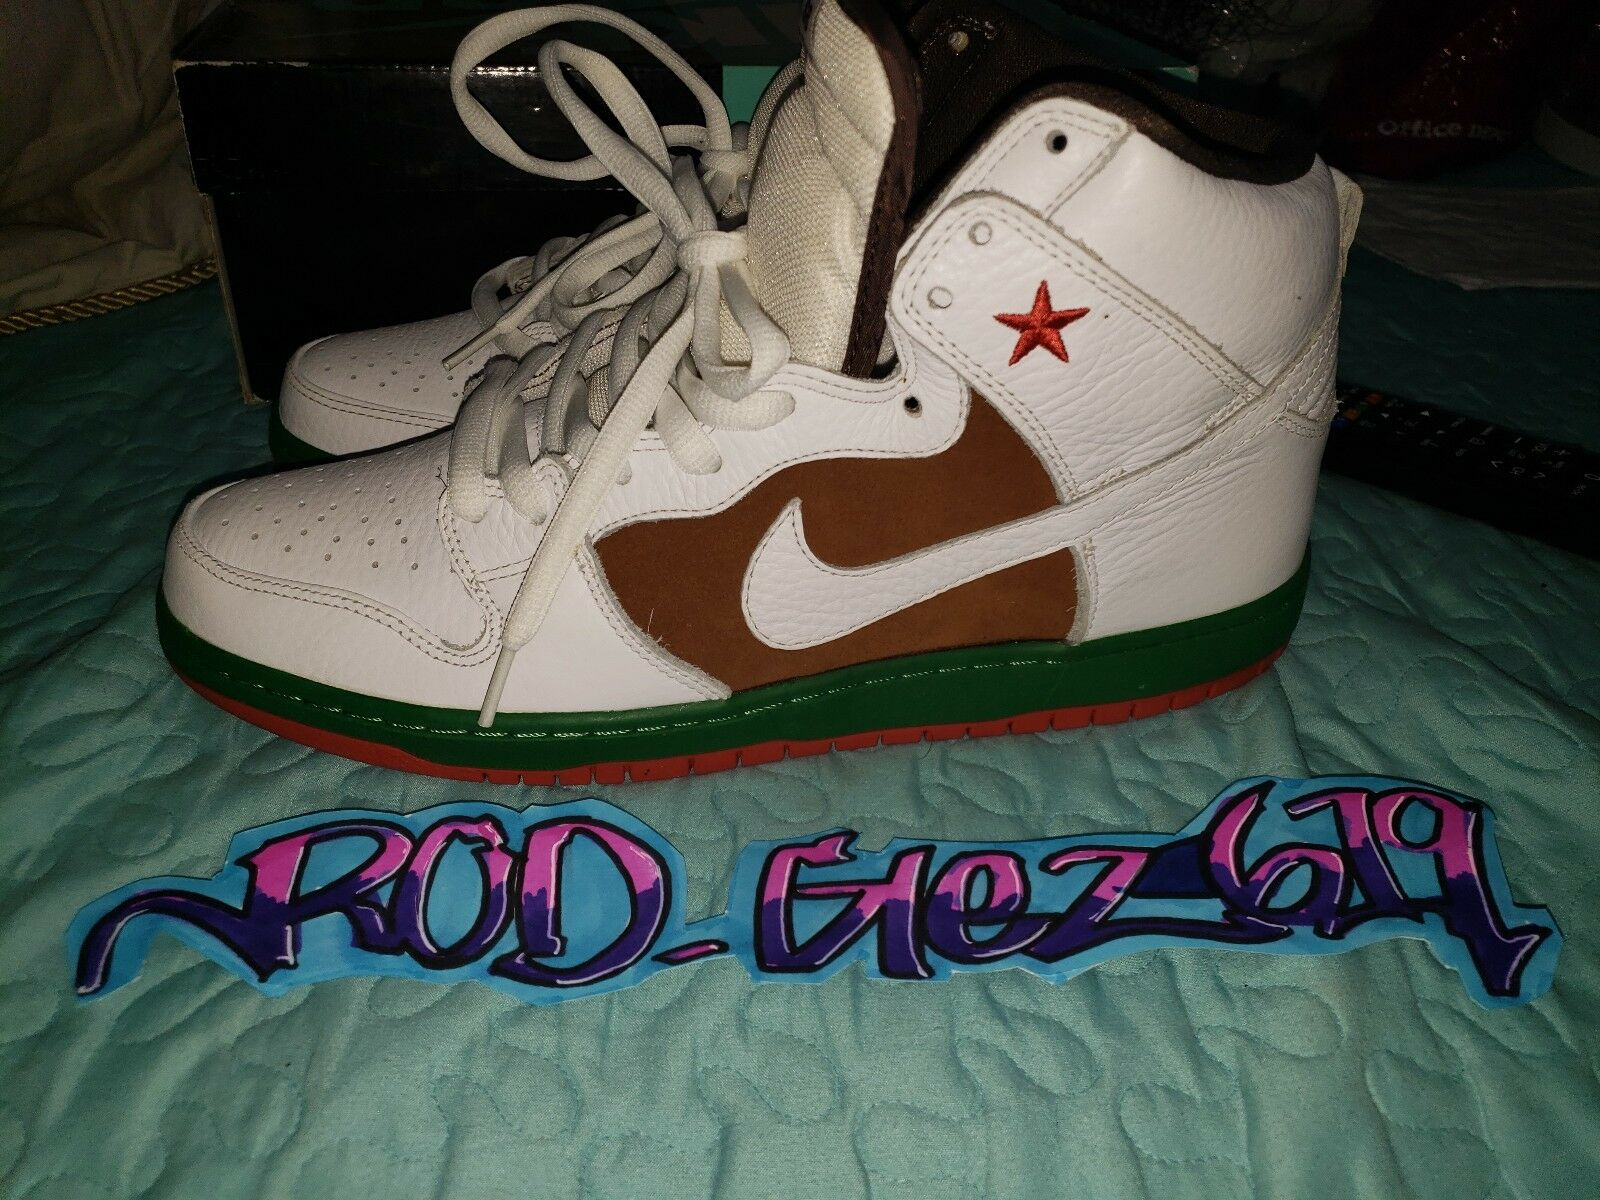 Nike Sb High - Cali - Size 12 tried on pads